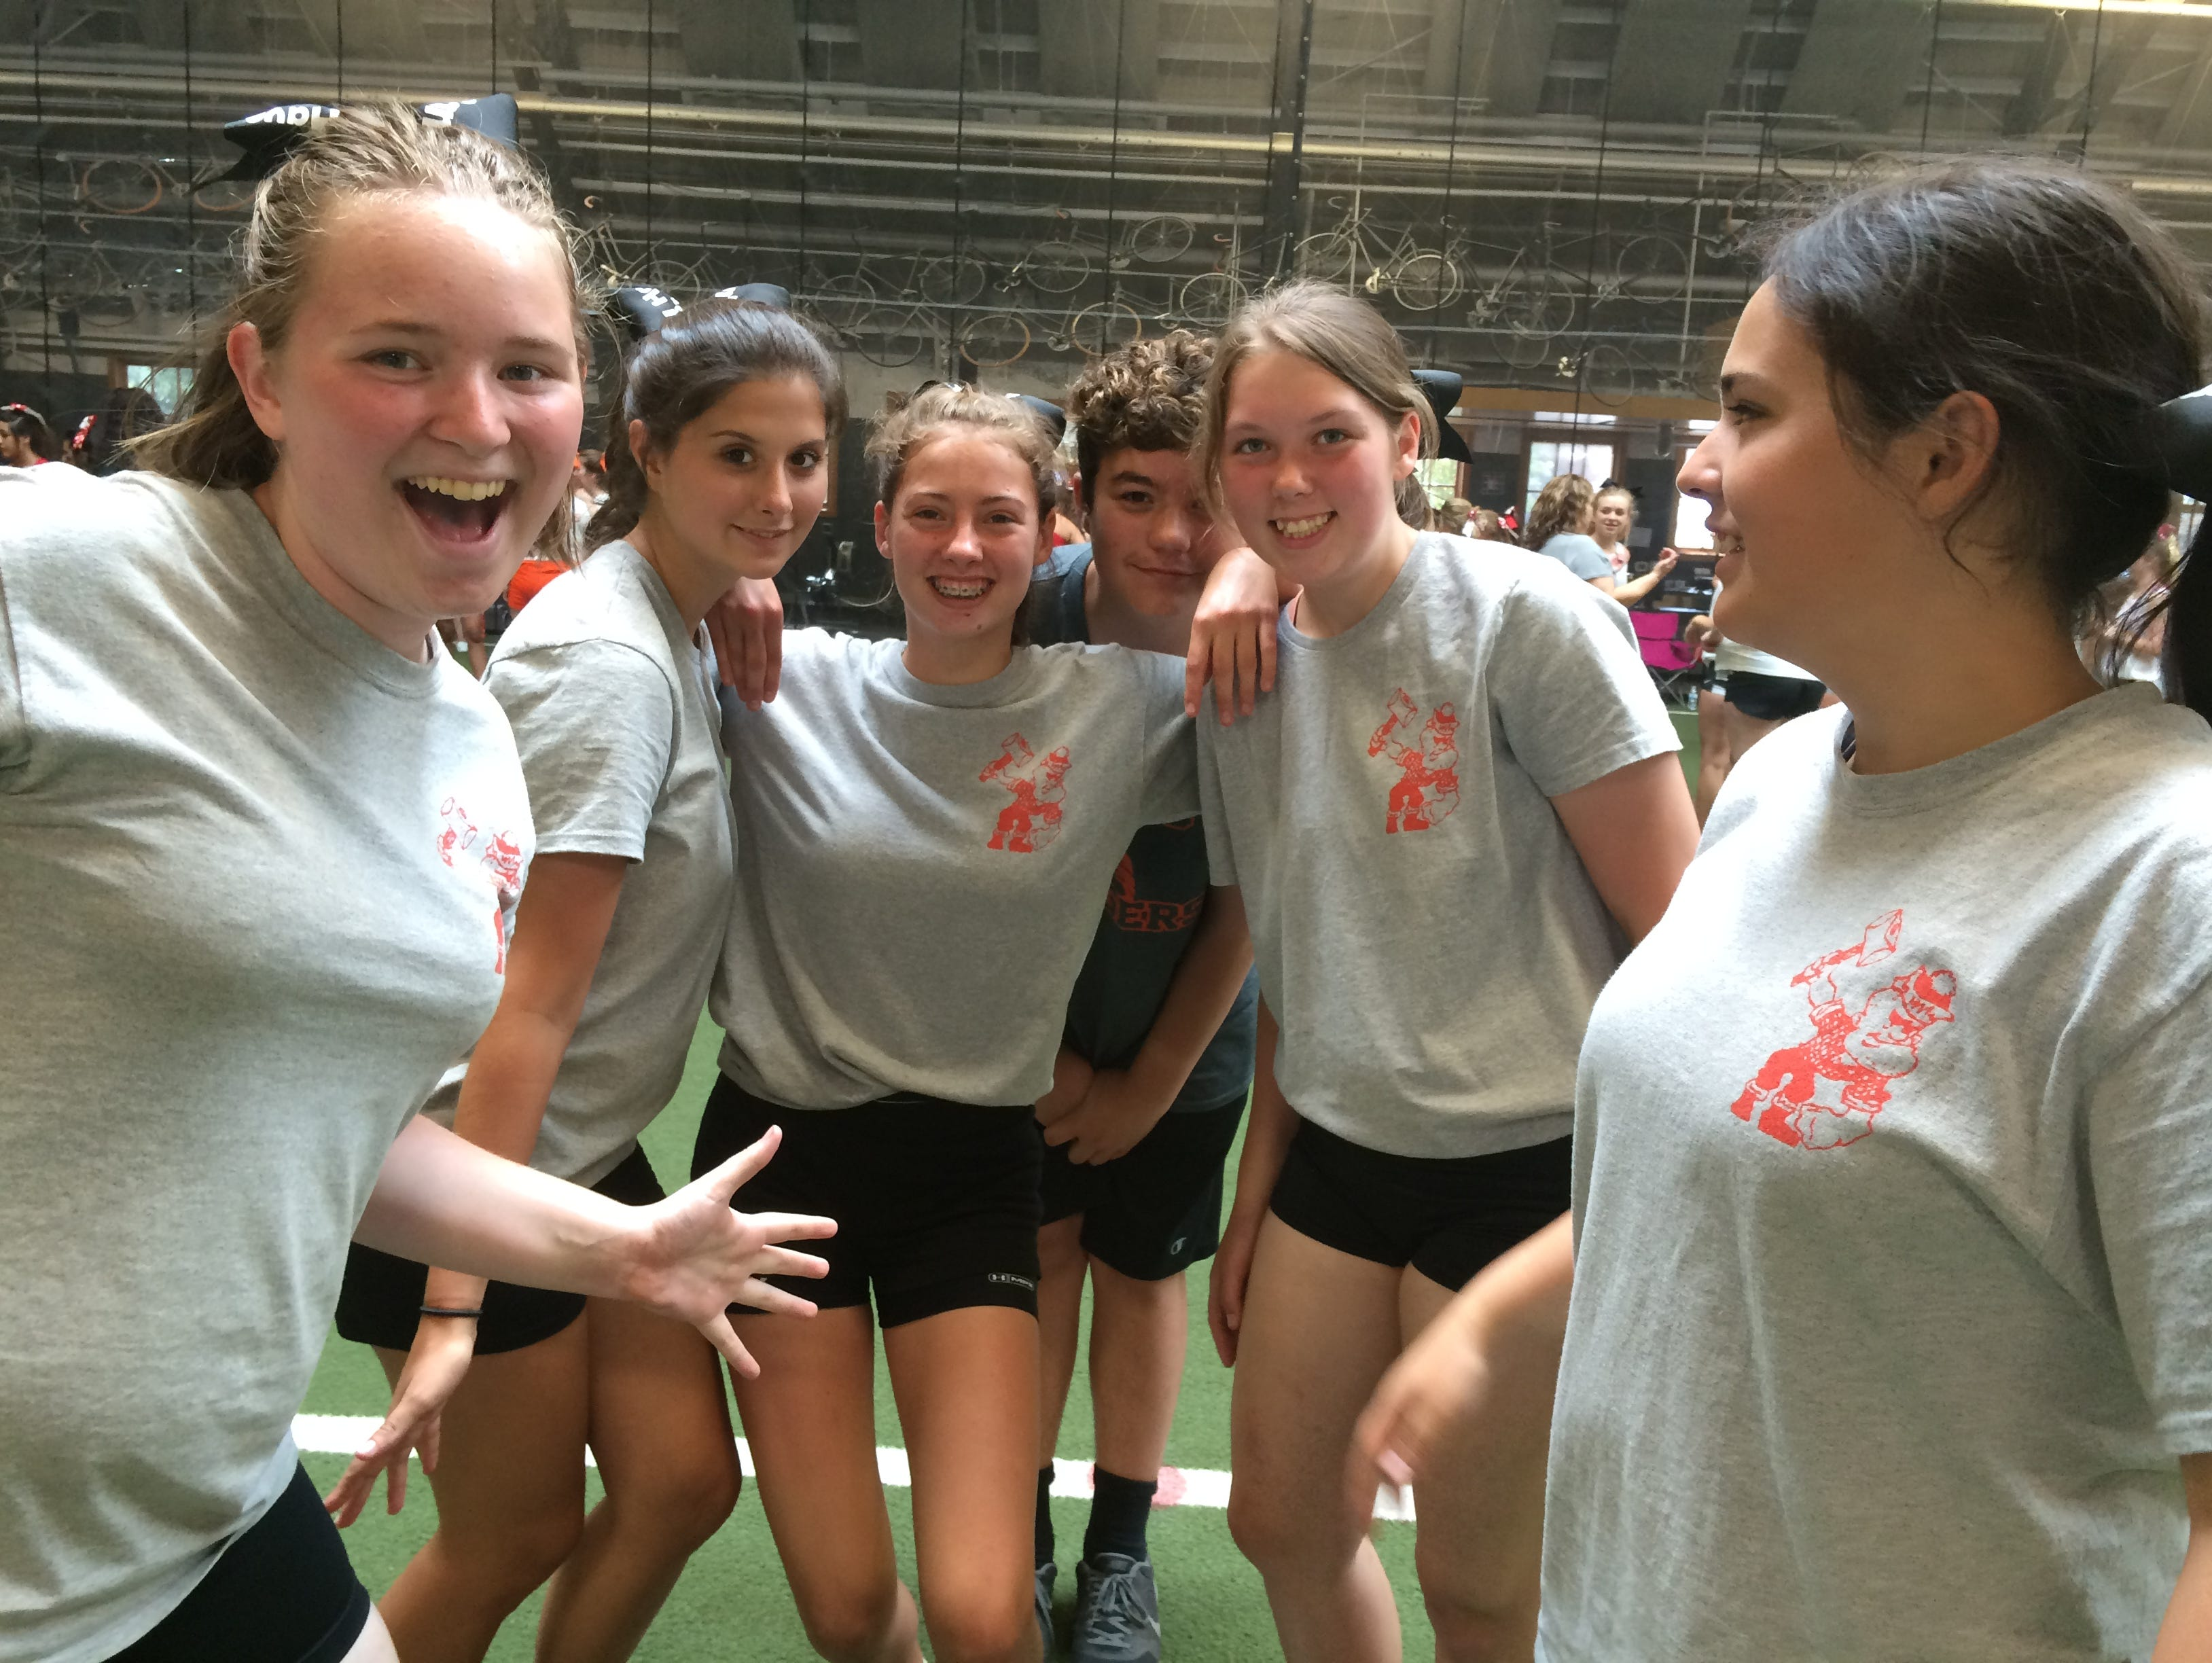 A little bit of fun during the summer competition for Scio High School. (from left: Brooke Nelson, Shyanne Hysell , Macy Bodine, Ethan Eckert, Skylar Medley, and Shannon Campos.)